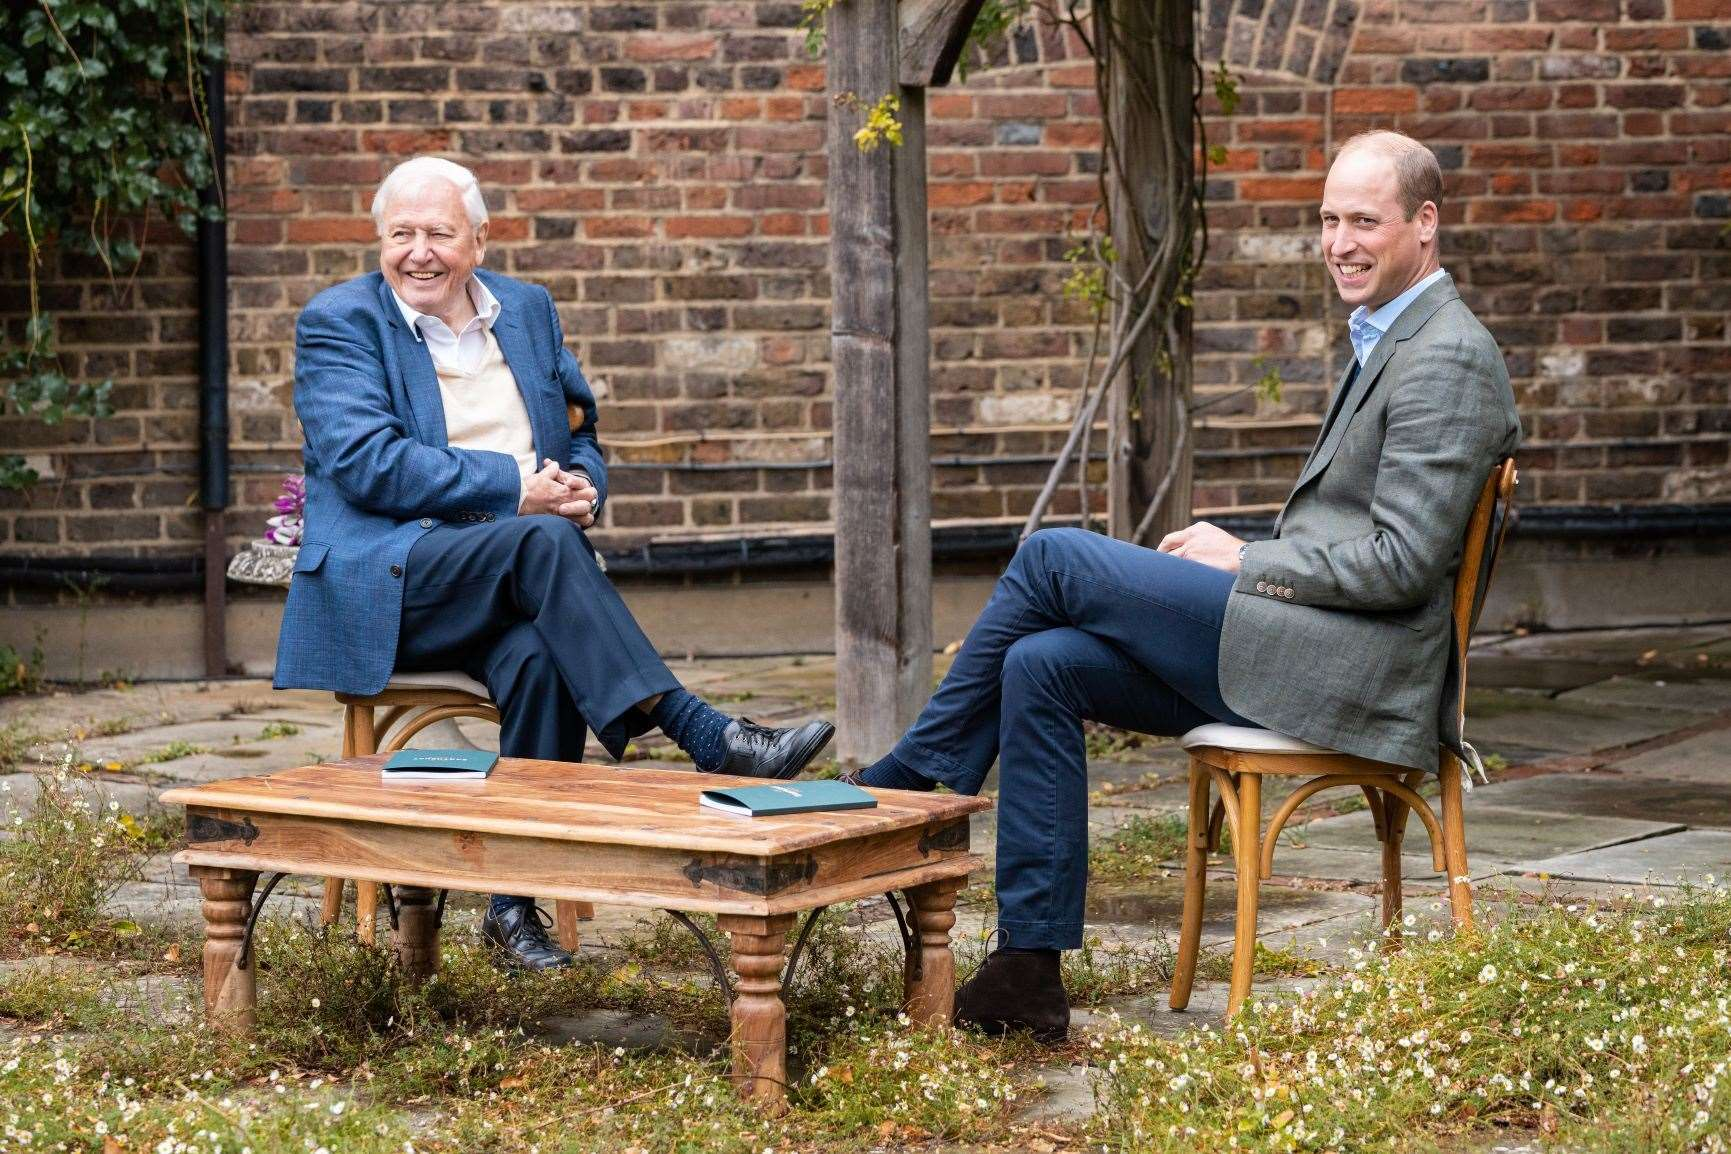 William with Sir David Attenborough, a member of the Earthshot Prize Council (Kensington Palace/The Earthshot Prize)